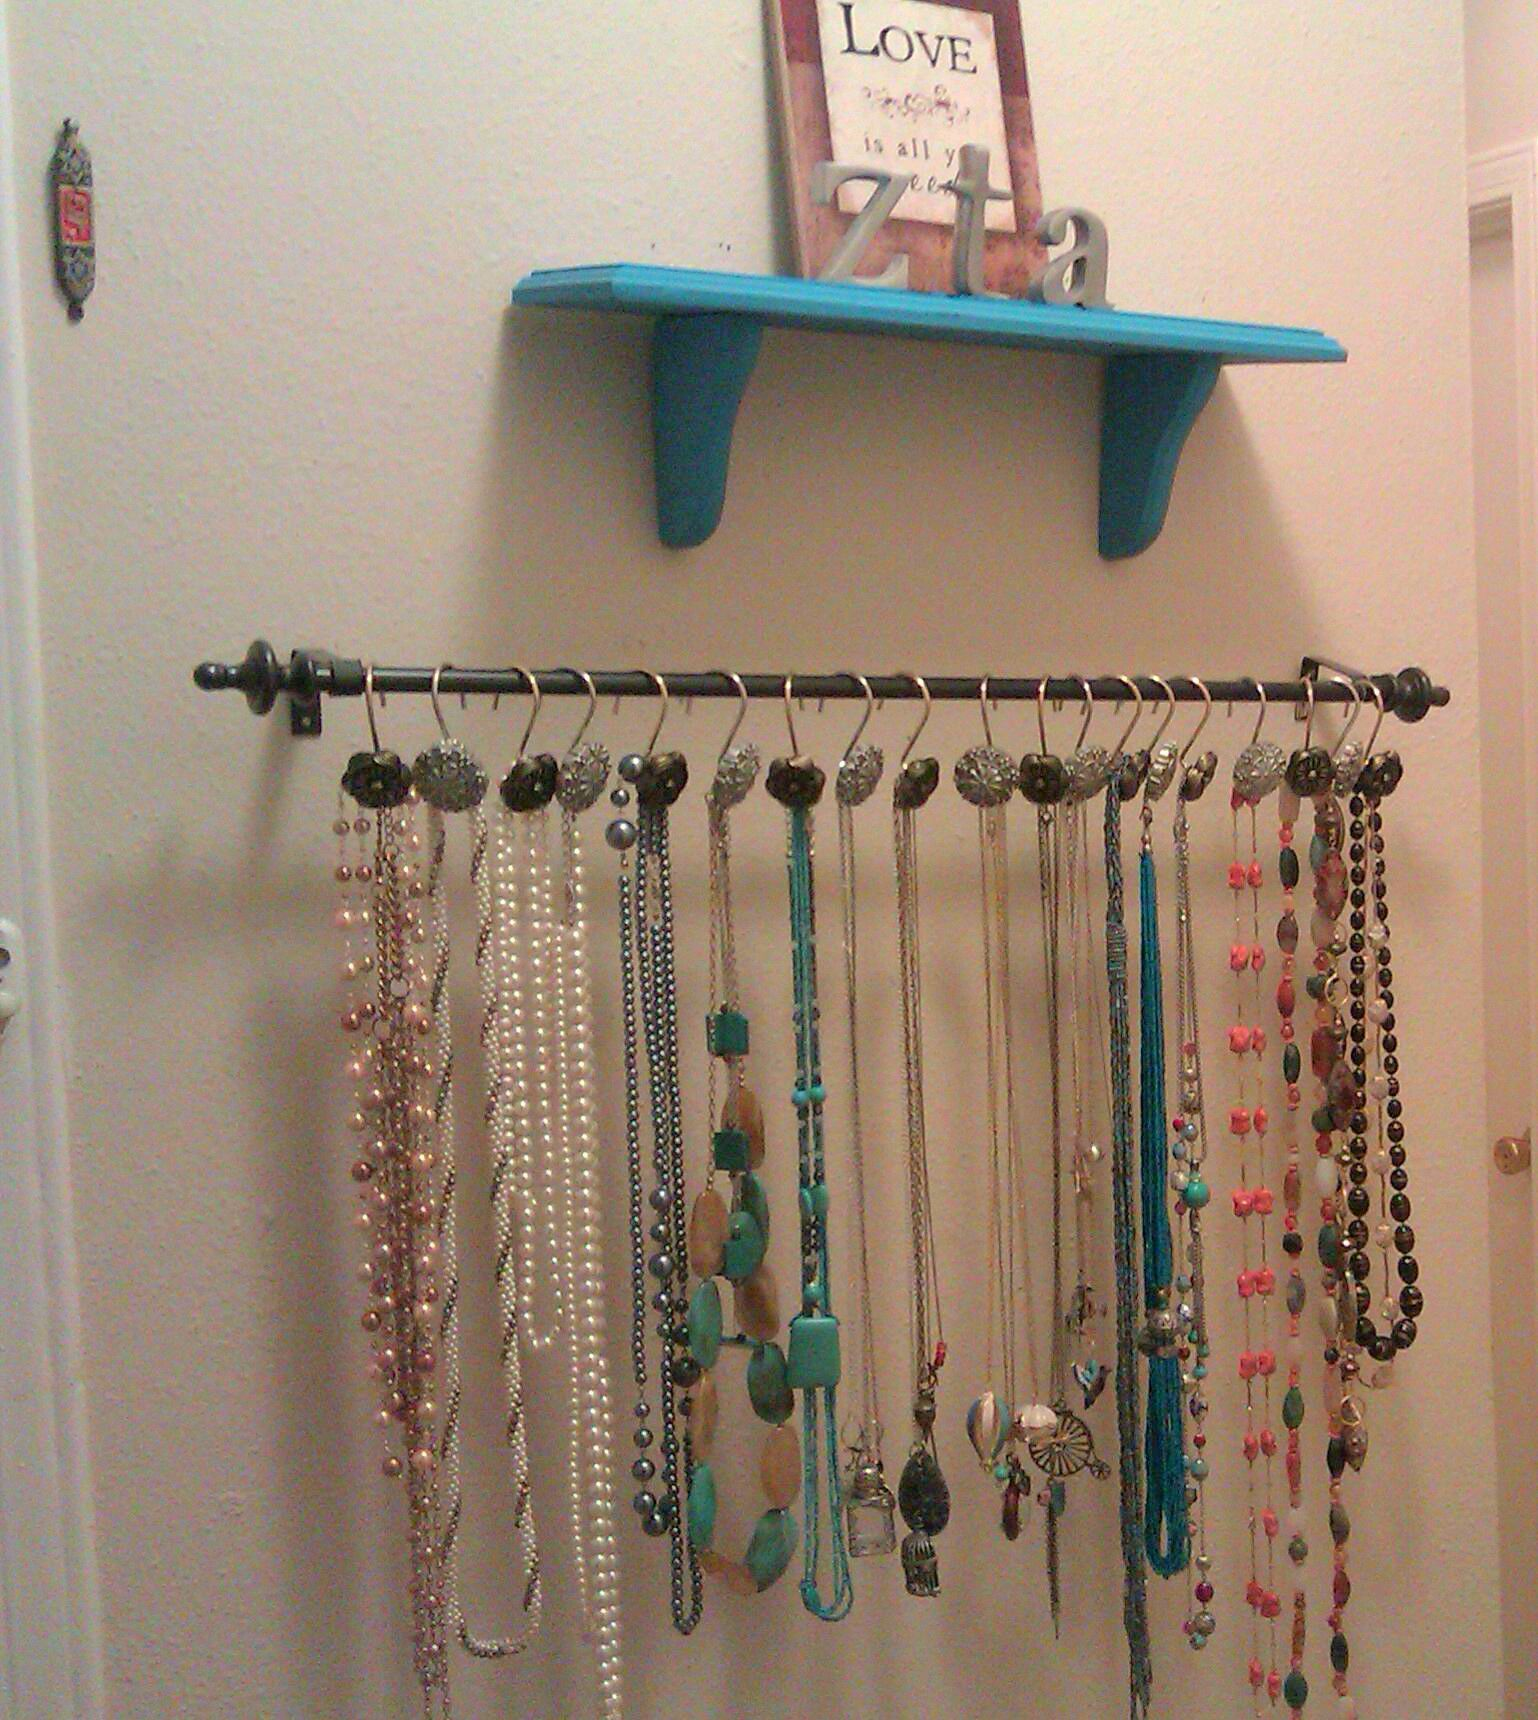 Diy Necklace Hanger I Bought A Curtain Rod And Intricate Shower